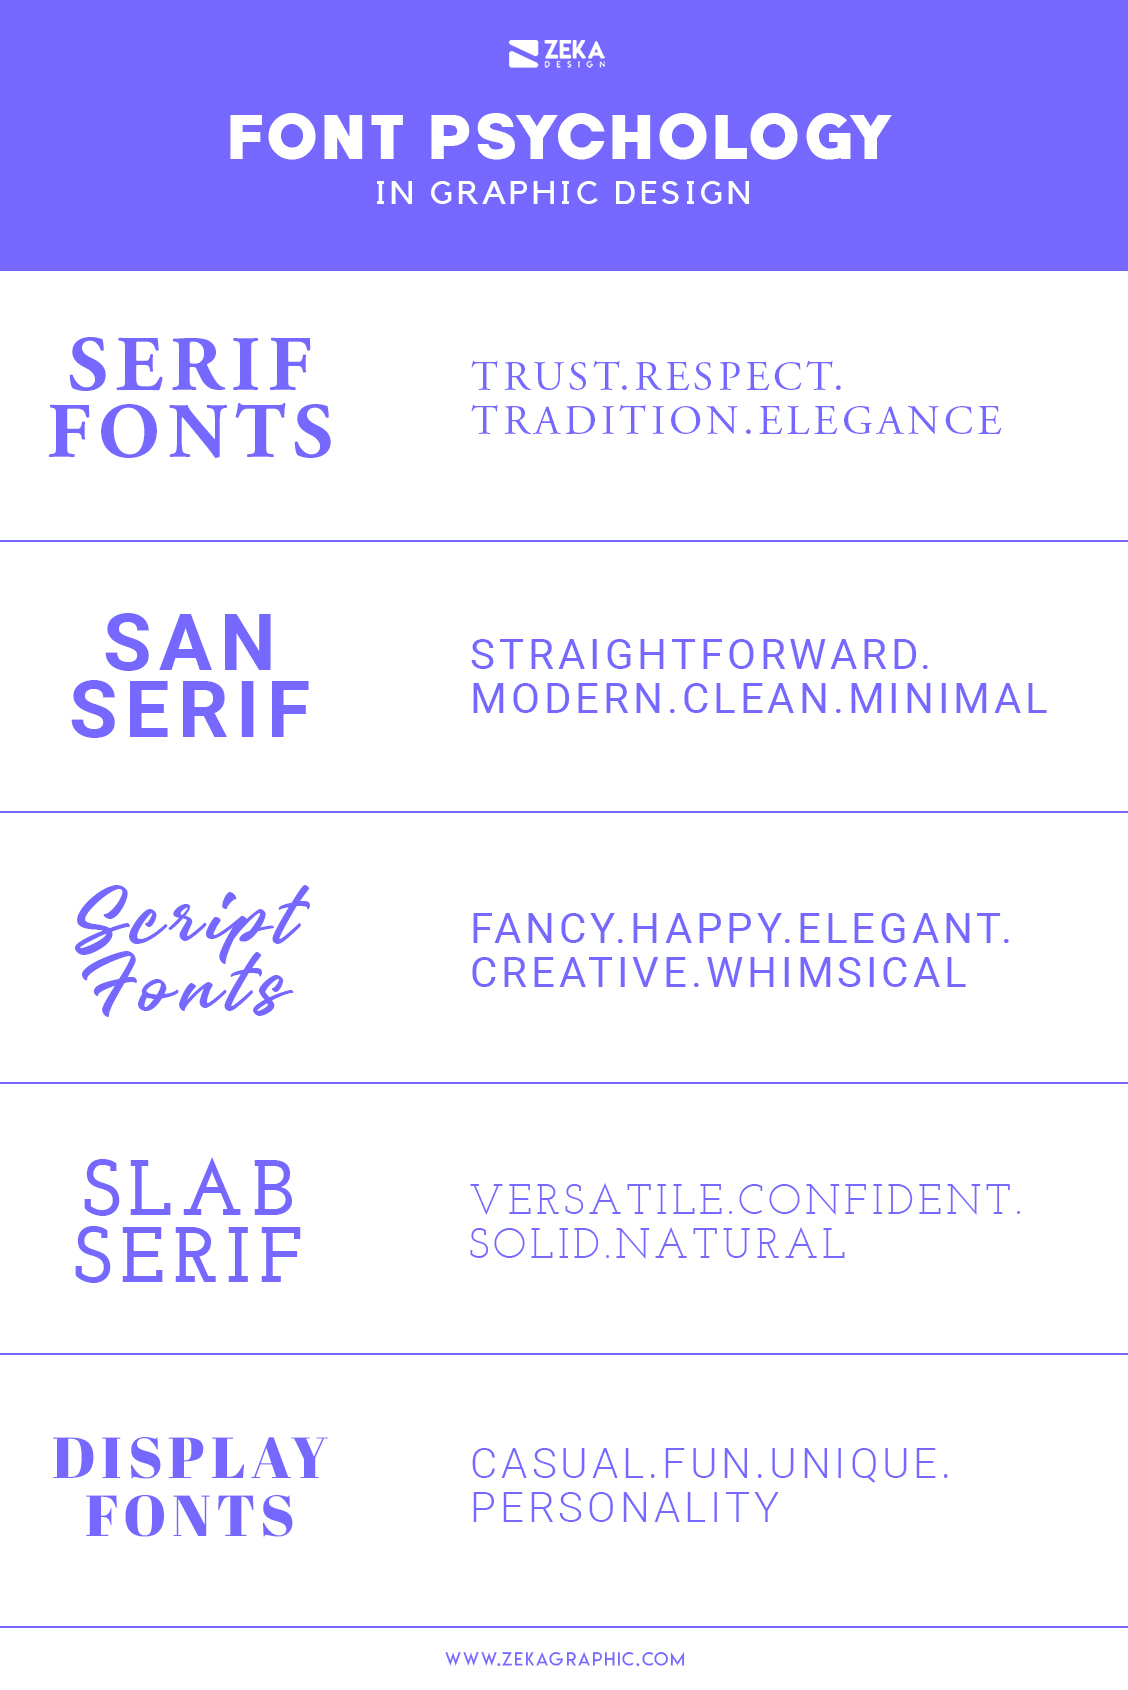 Font Psychology in Graphic Design Infographic